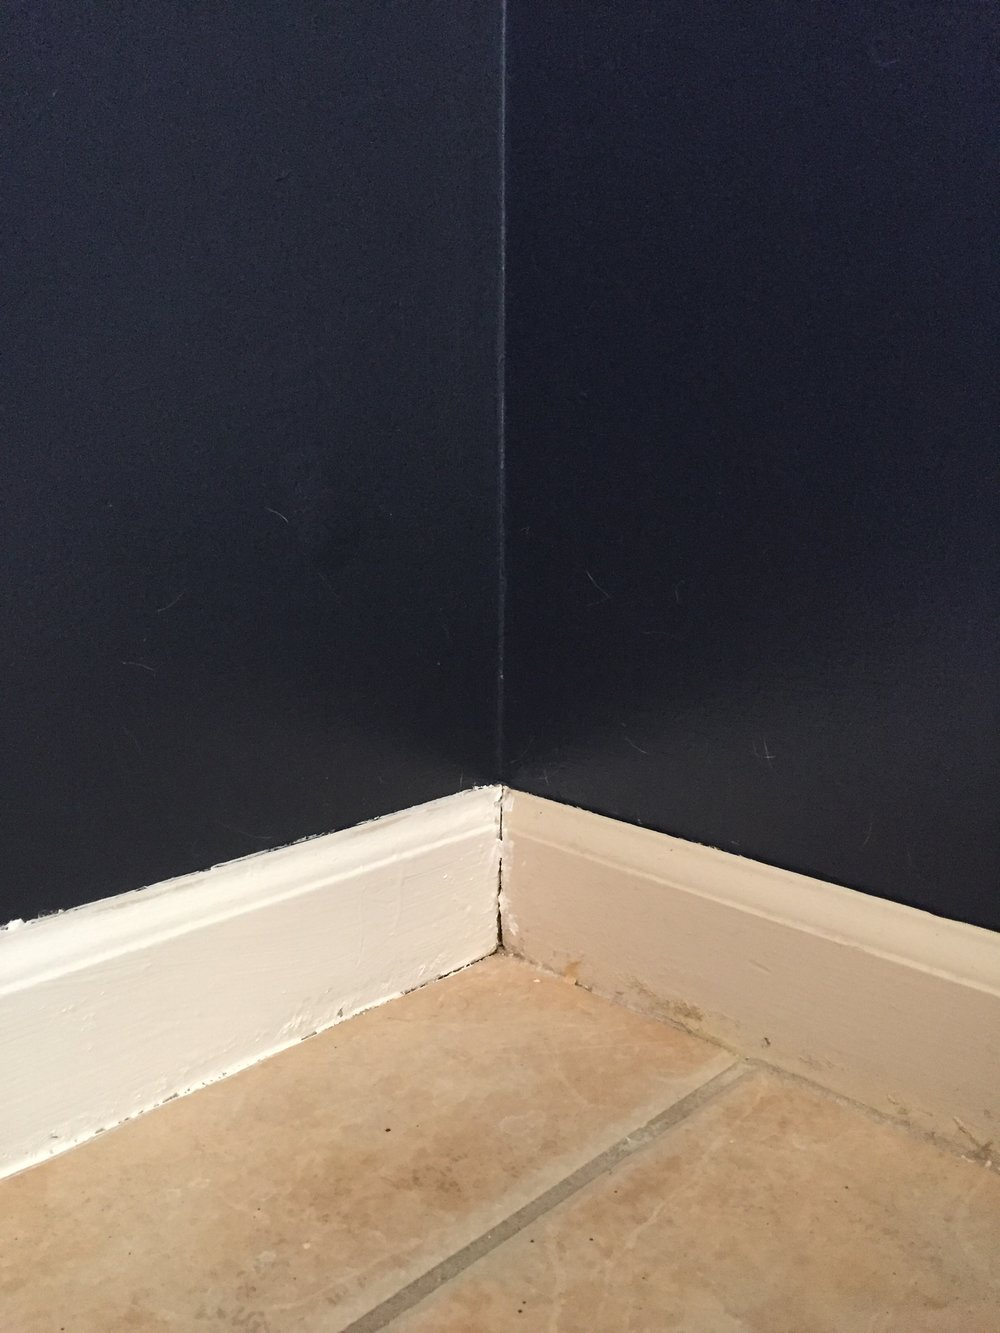 What a difference a coat of paint makes (baseboard on the left has fresh coat applied)!